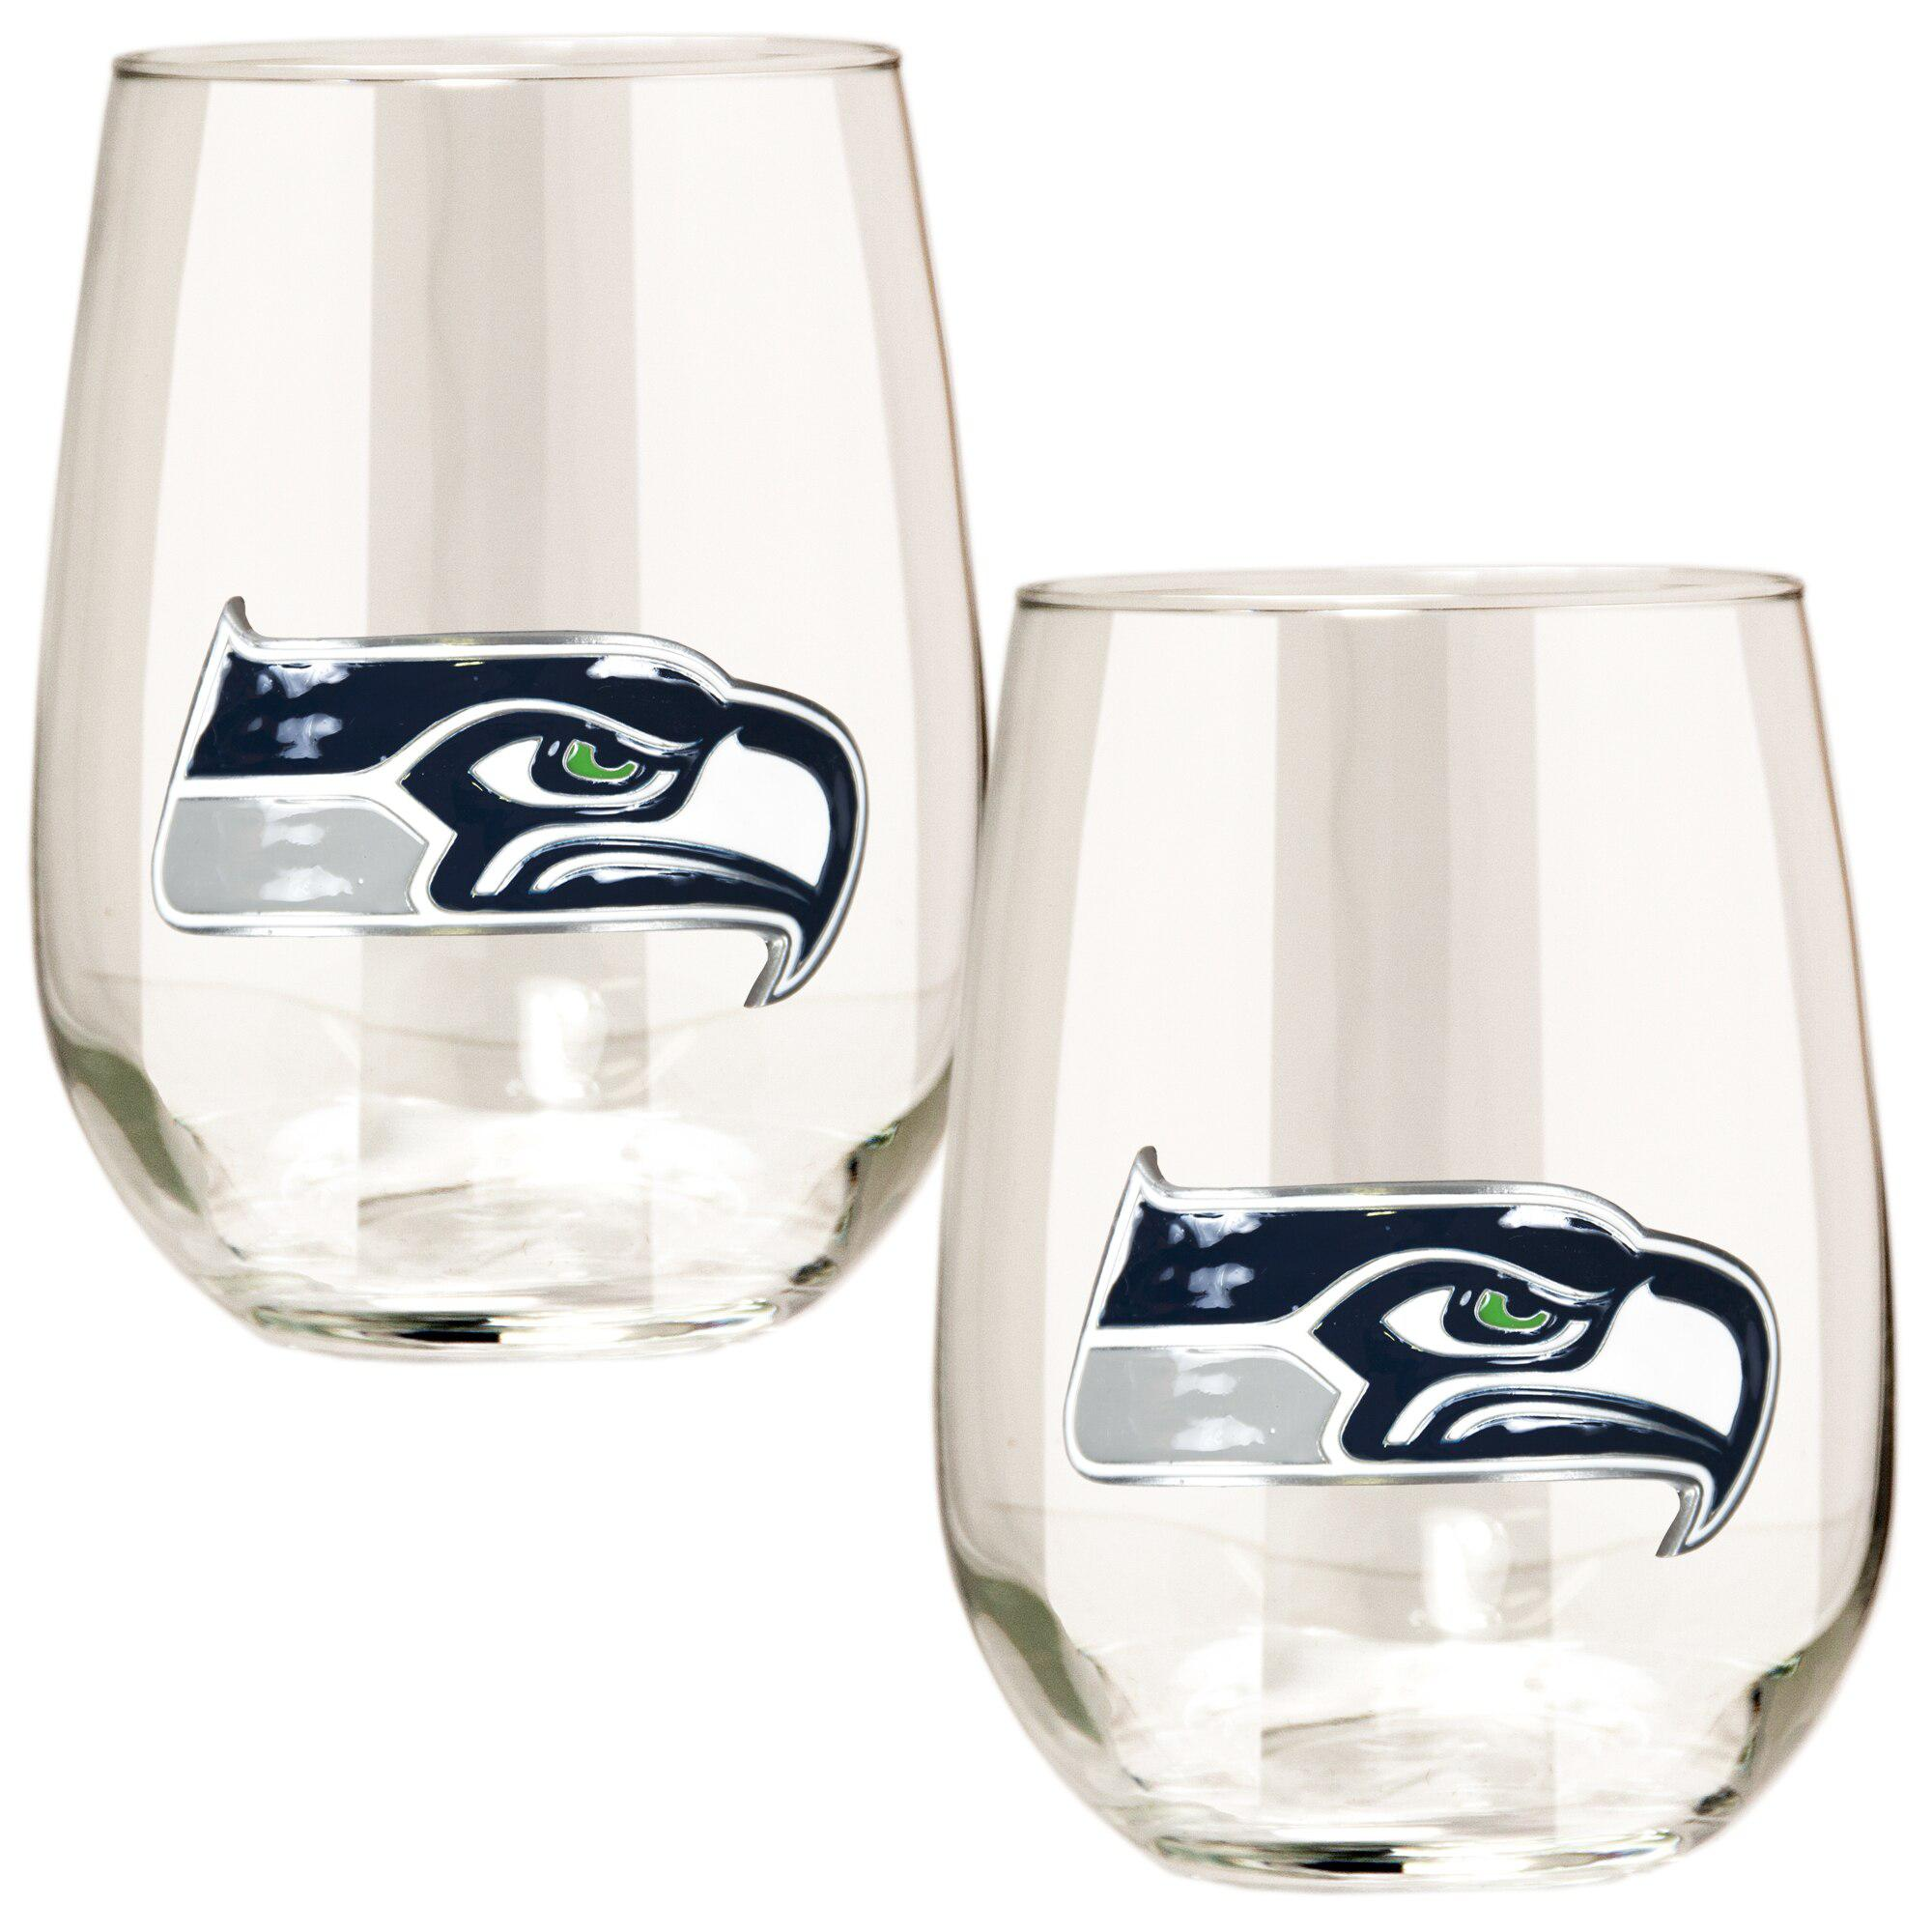 Seattle Seahawks 15 oz. Stemless Wine Glass - (Set of 2)-Stemless Wine Glass-Great American Products-Top Notch Gift Shop